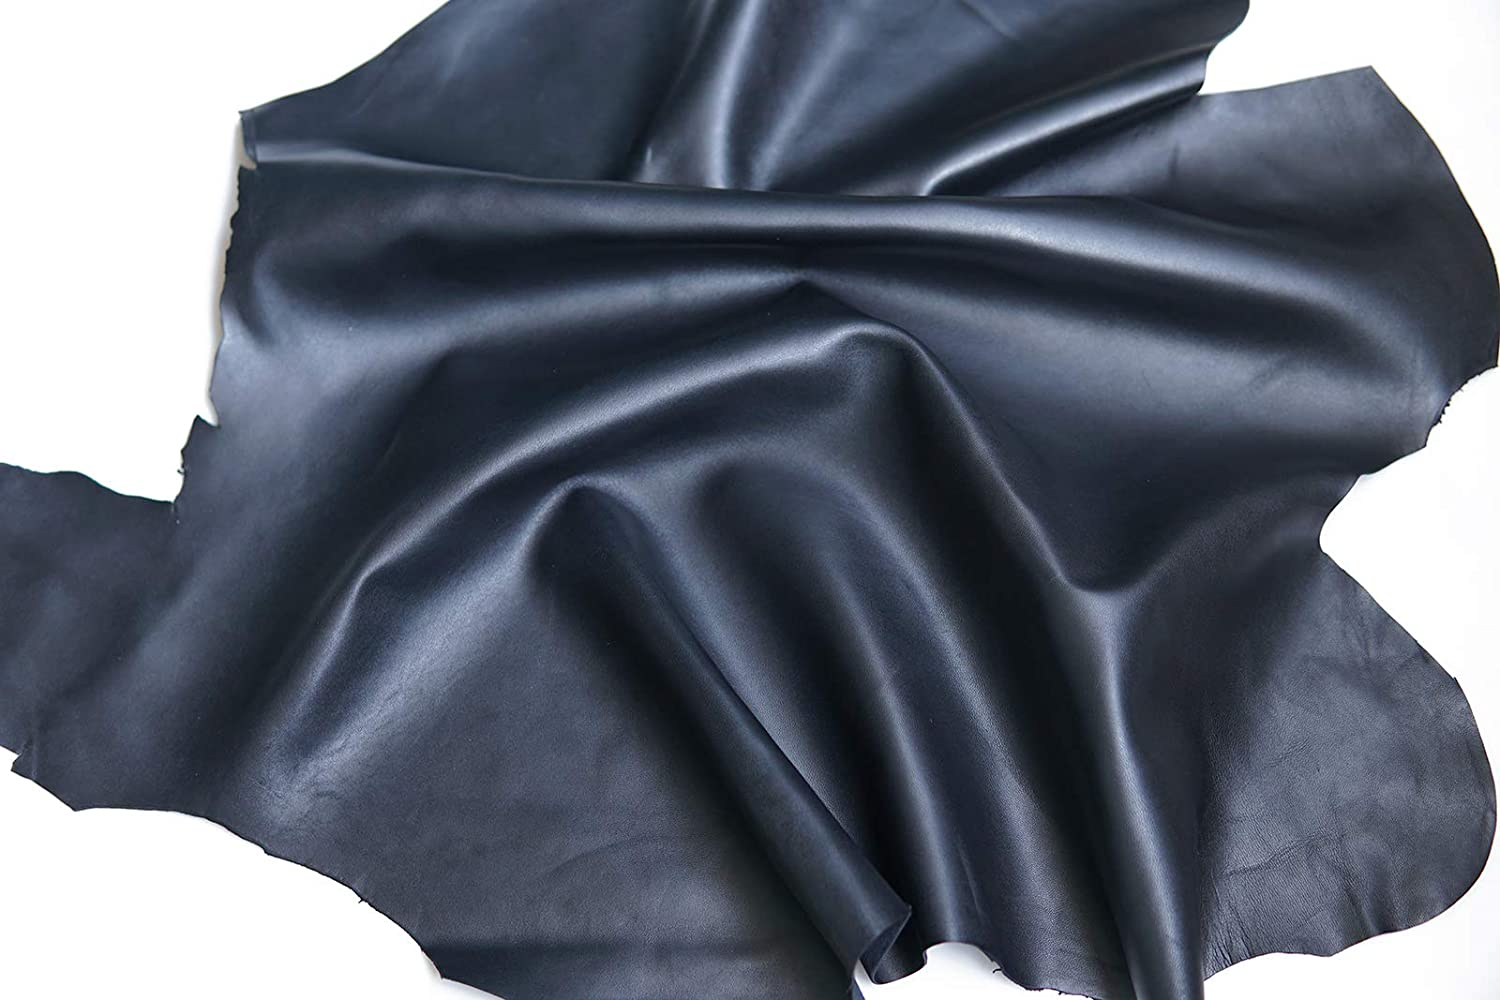 Black Full Grain Upholstery Genuine Leather Hides 1.0mm-1.2mm Leather Whole Lambskin Leather for Crafts//Sewing//Hobby Workshop//Home Decor Crafting Leather Supplies 5~7feet Square